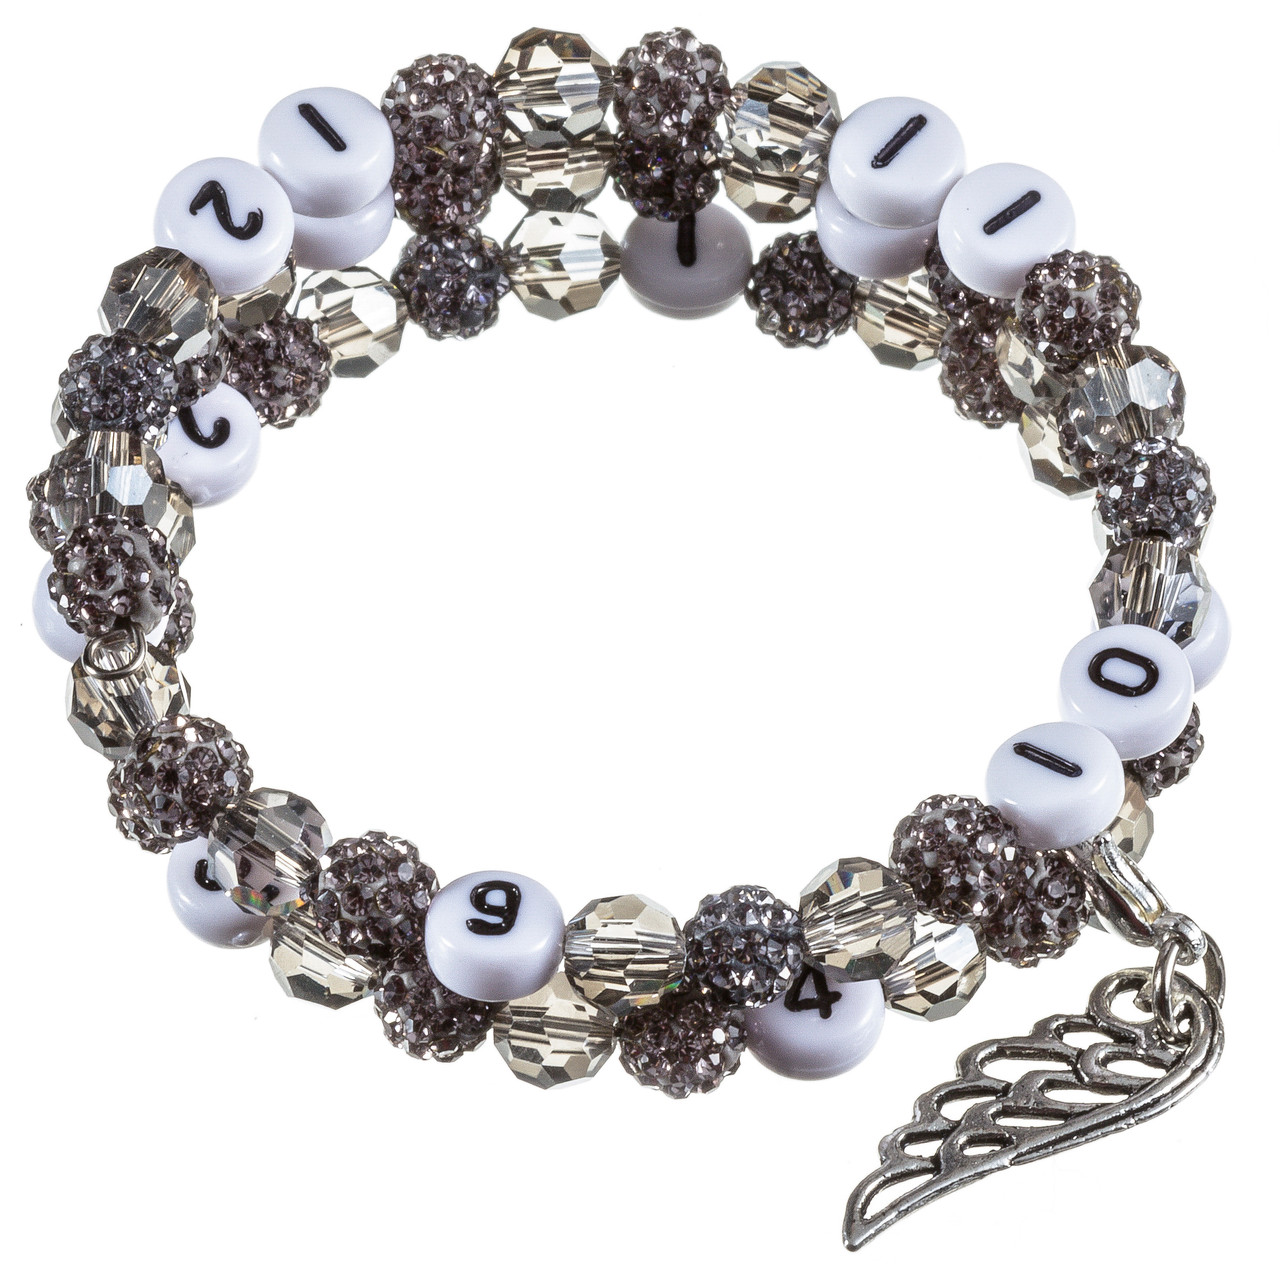 Stillarmband Grey Strass-/Glasschliffperlen